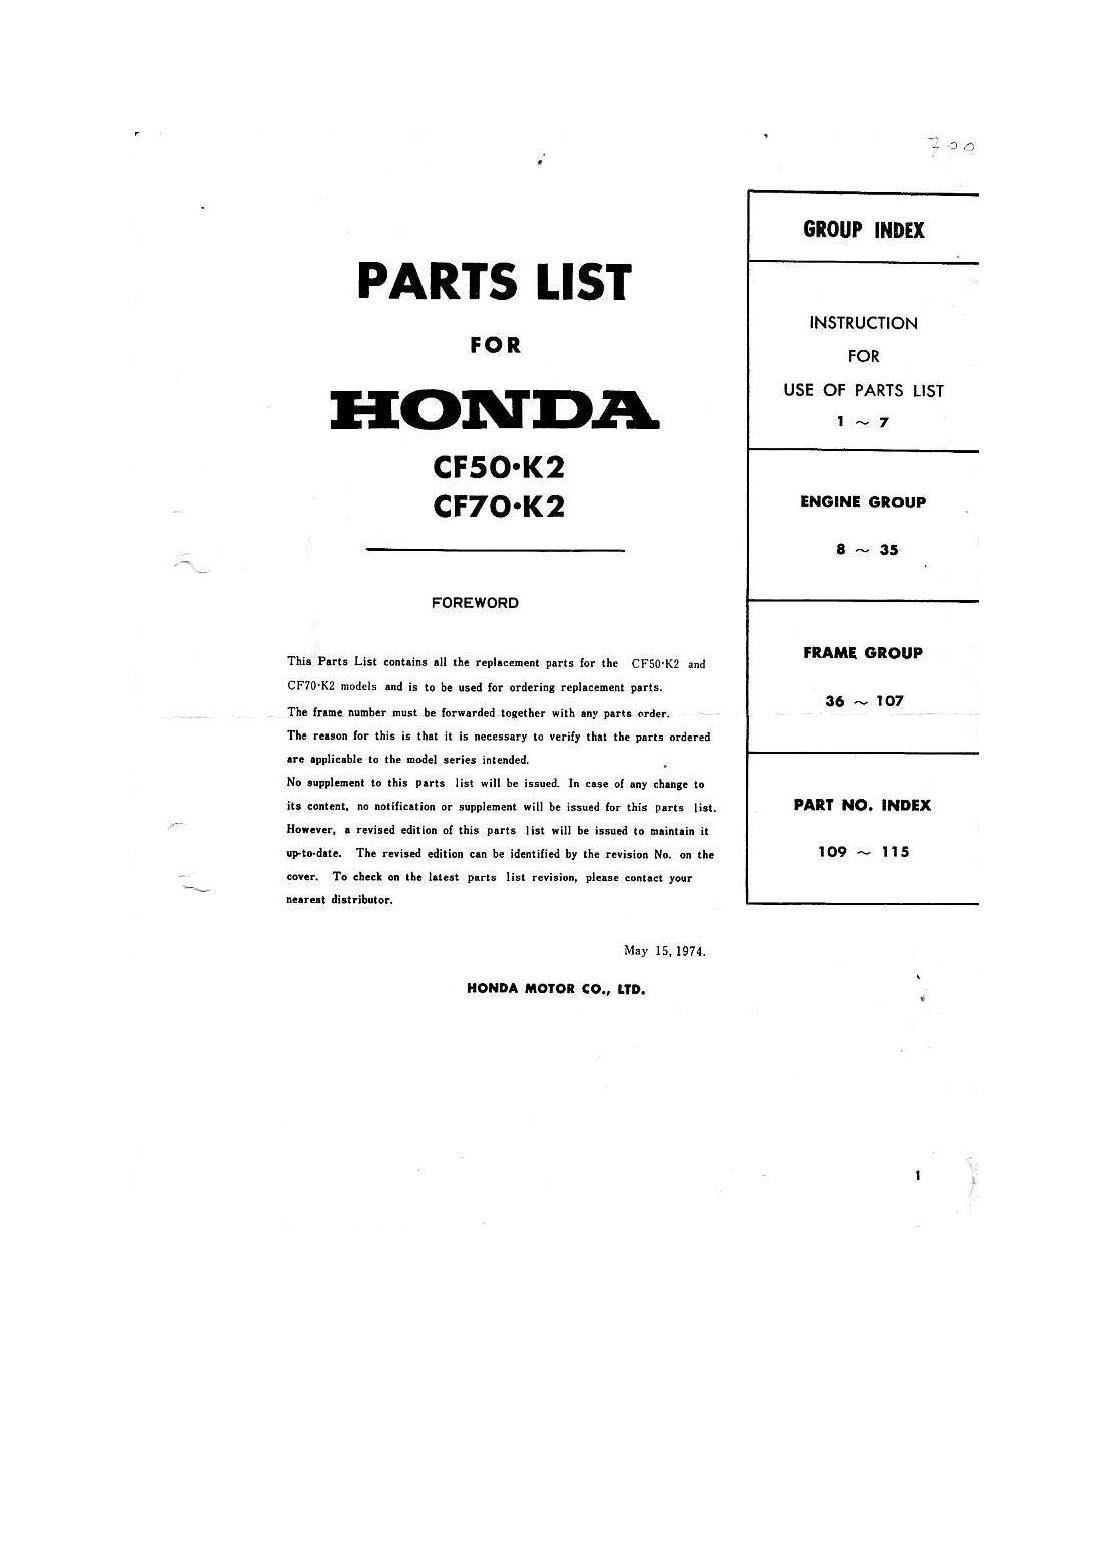 Parts list for Honda CF50 (1974)